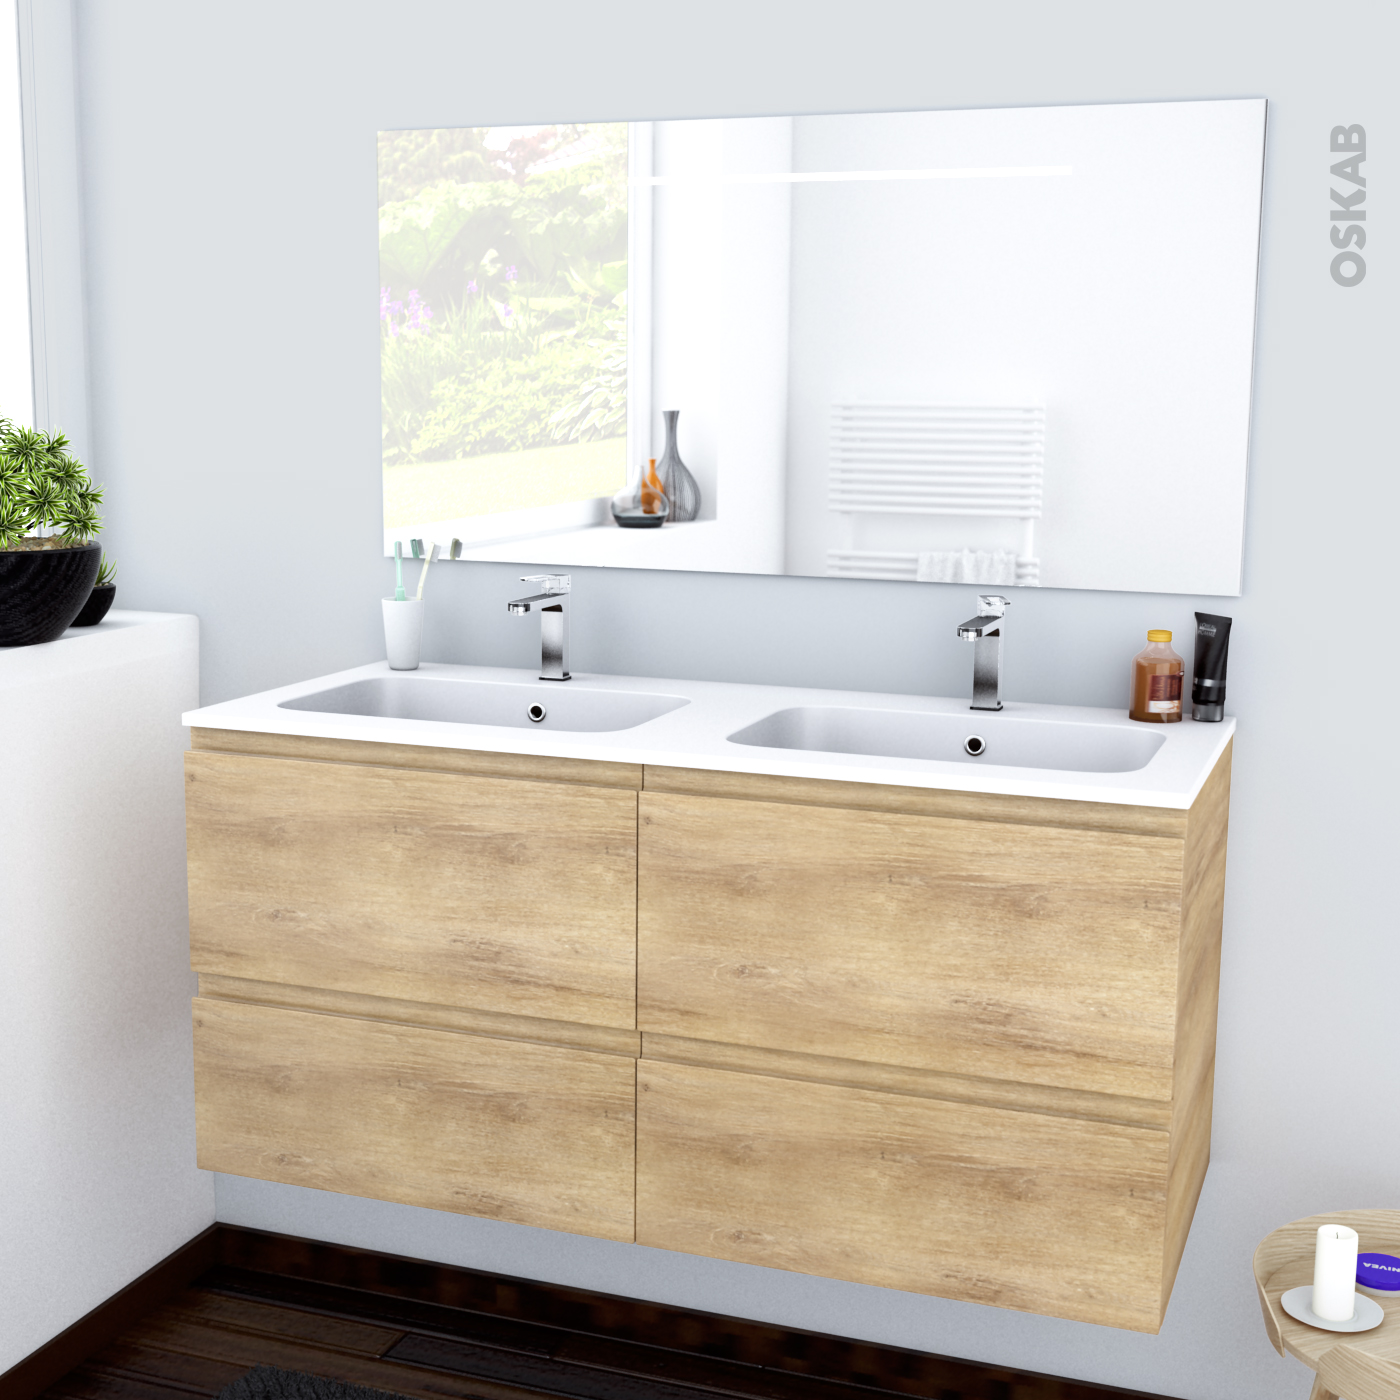 Lavabo double vasque retro hudson reed ensemble meuble de for Petit meuble double vasque